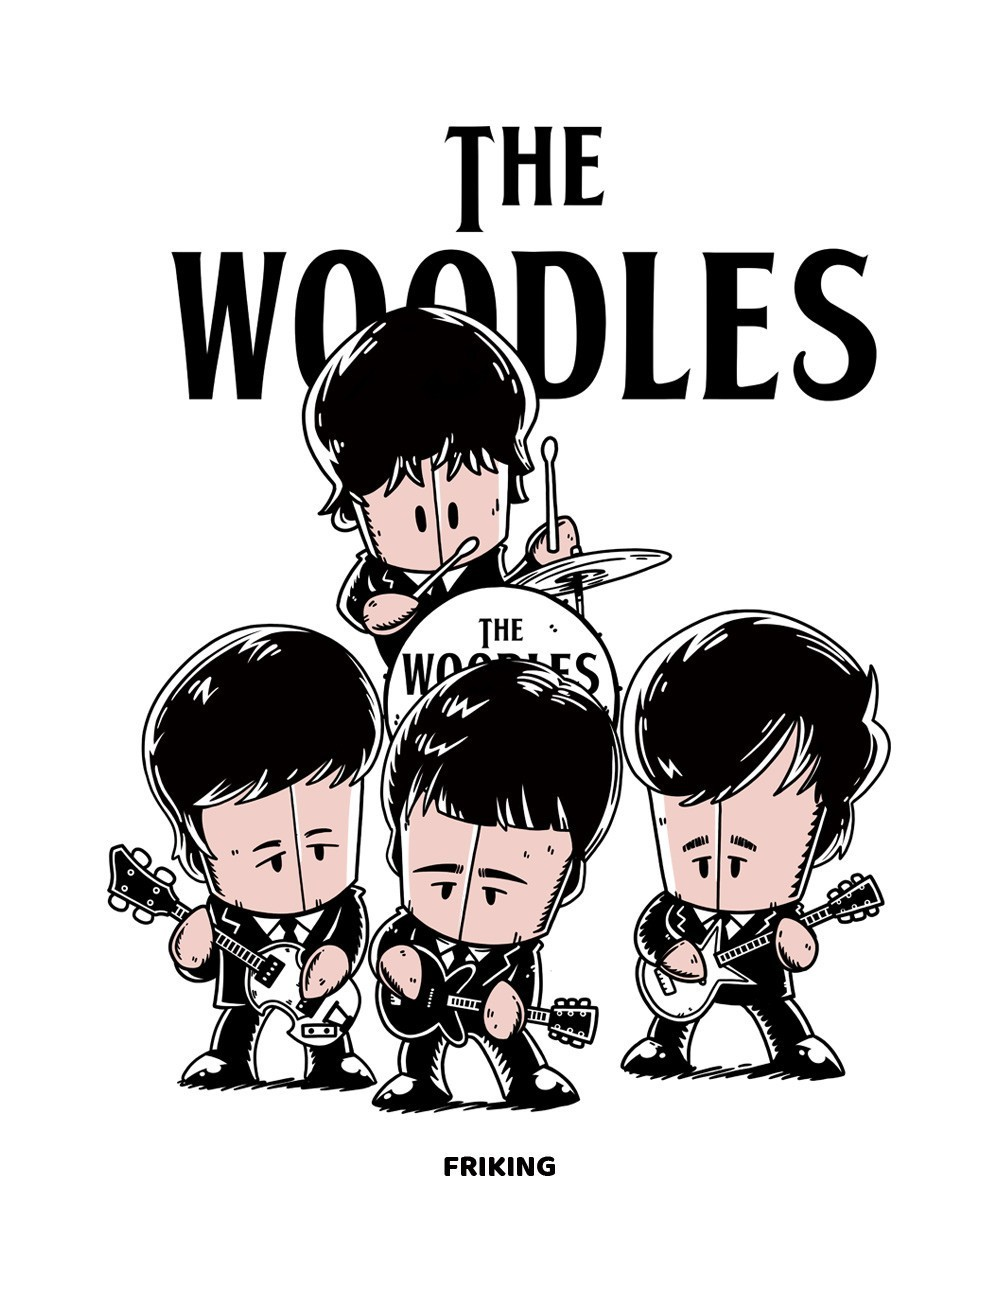 The Woodles